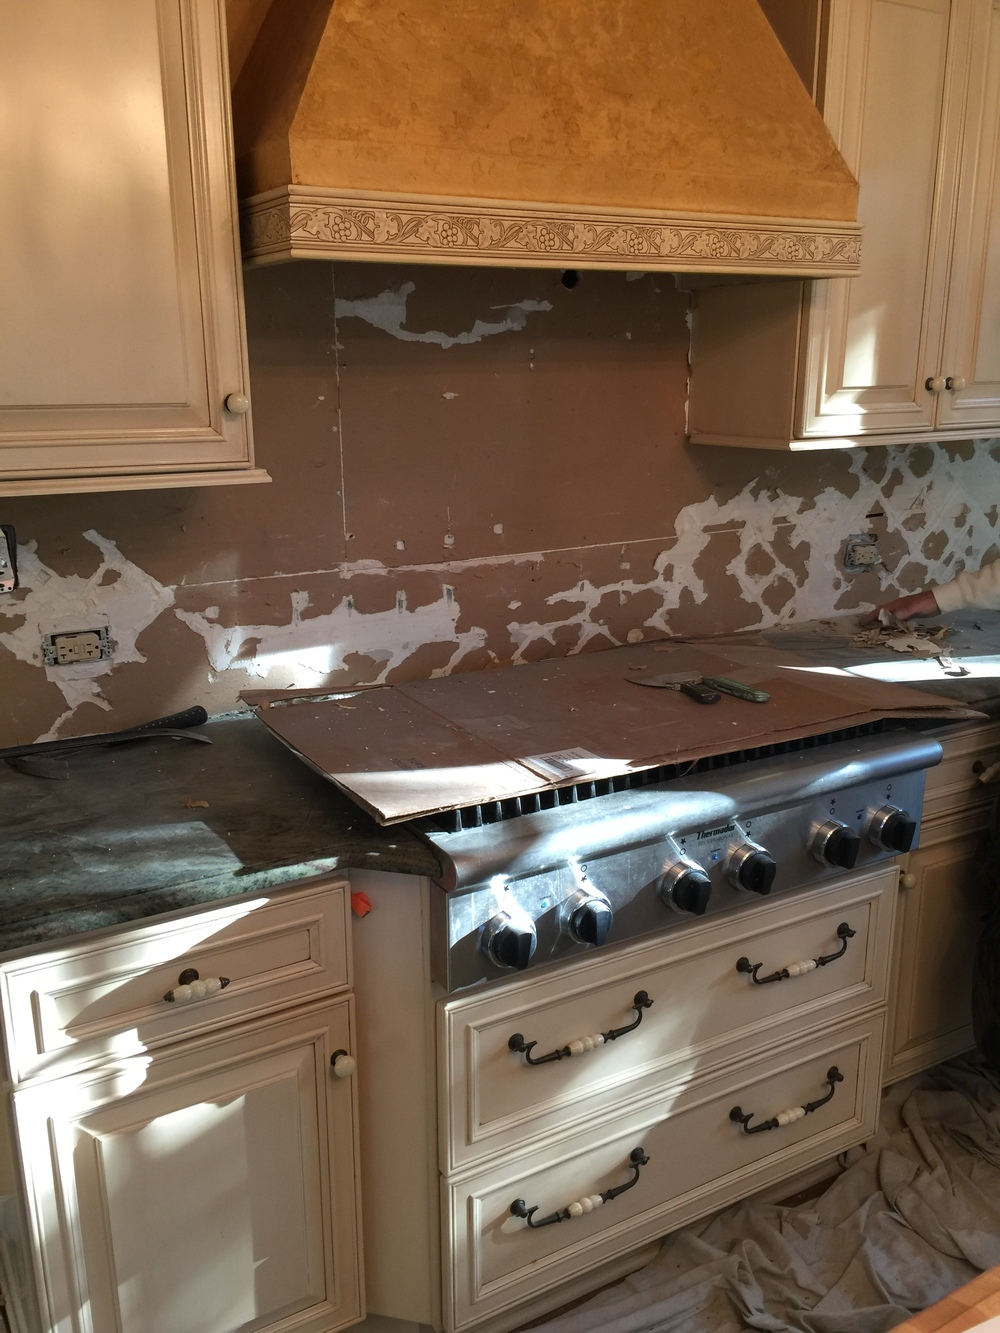 We removed the pastoral backsplash, cabinet hardware, and countertops.The china cabinet found a new home, and the walls were skim-coated smooth for paint. Cream colored cabinets were targeted for new paint. What to do about the heavily textured mustard-colored range hood?